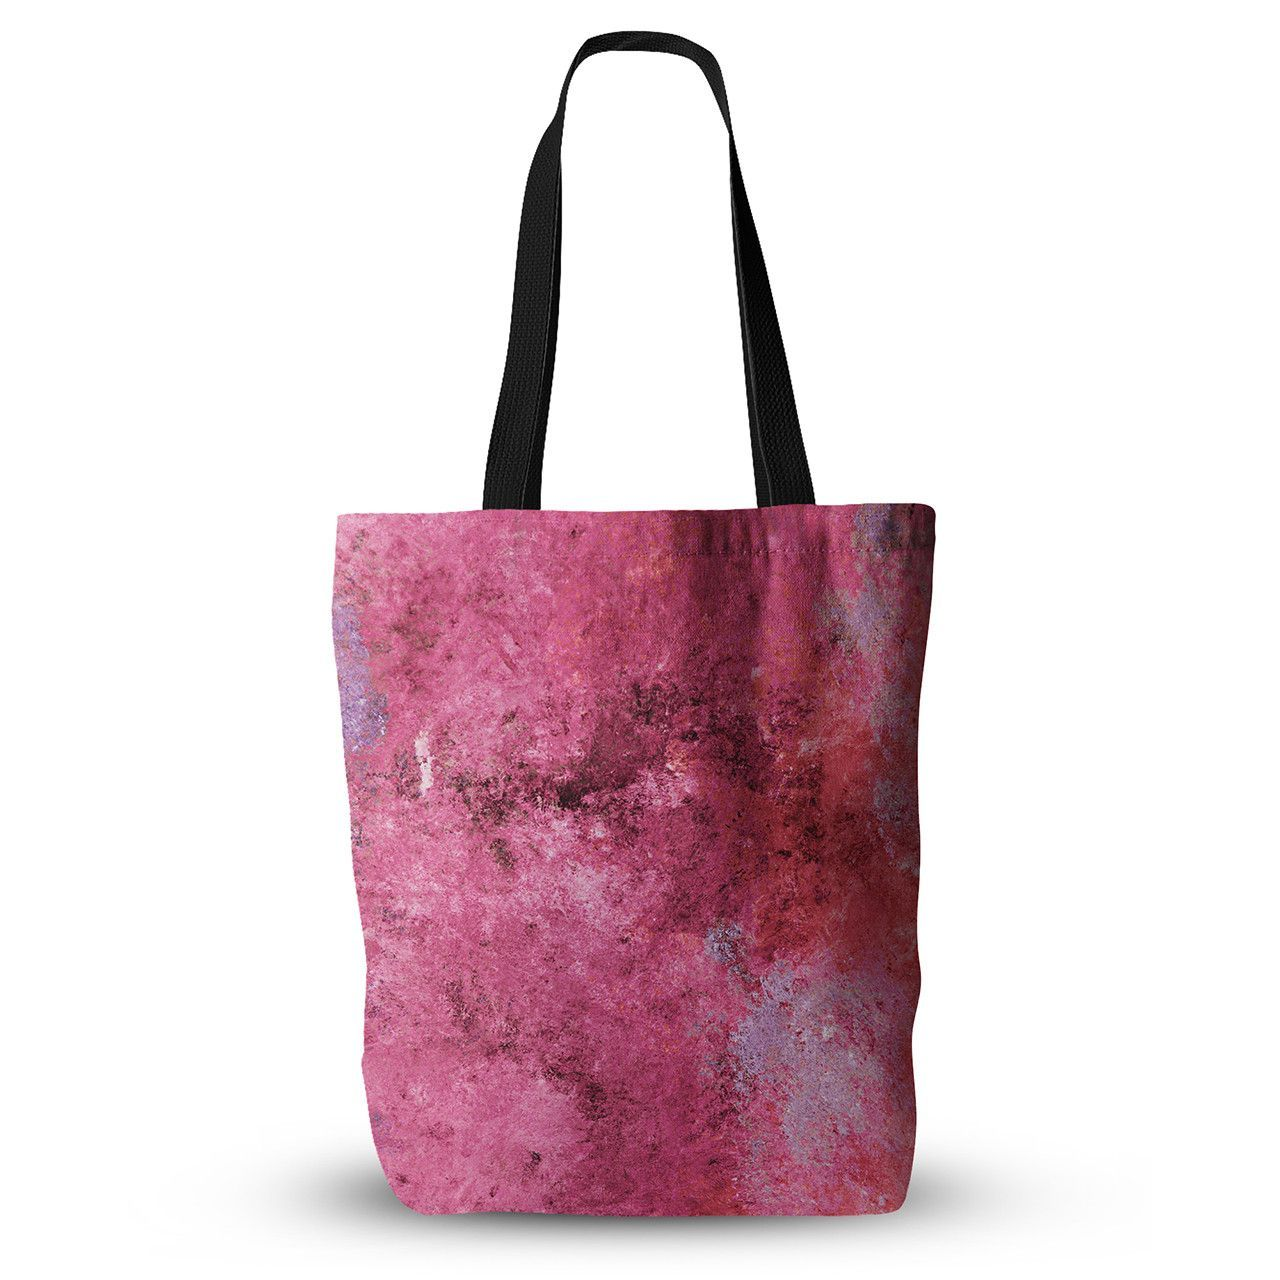 """CarolLynn Tice """"Cotton Candy"""" Red Pink Everything Tote Bag"""